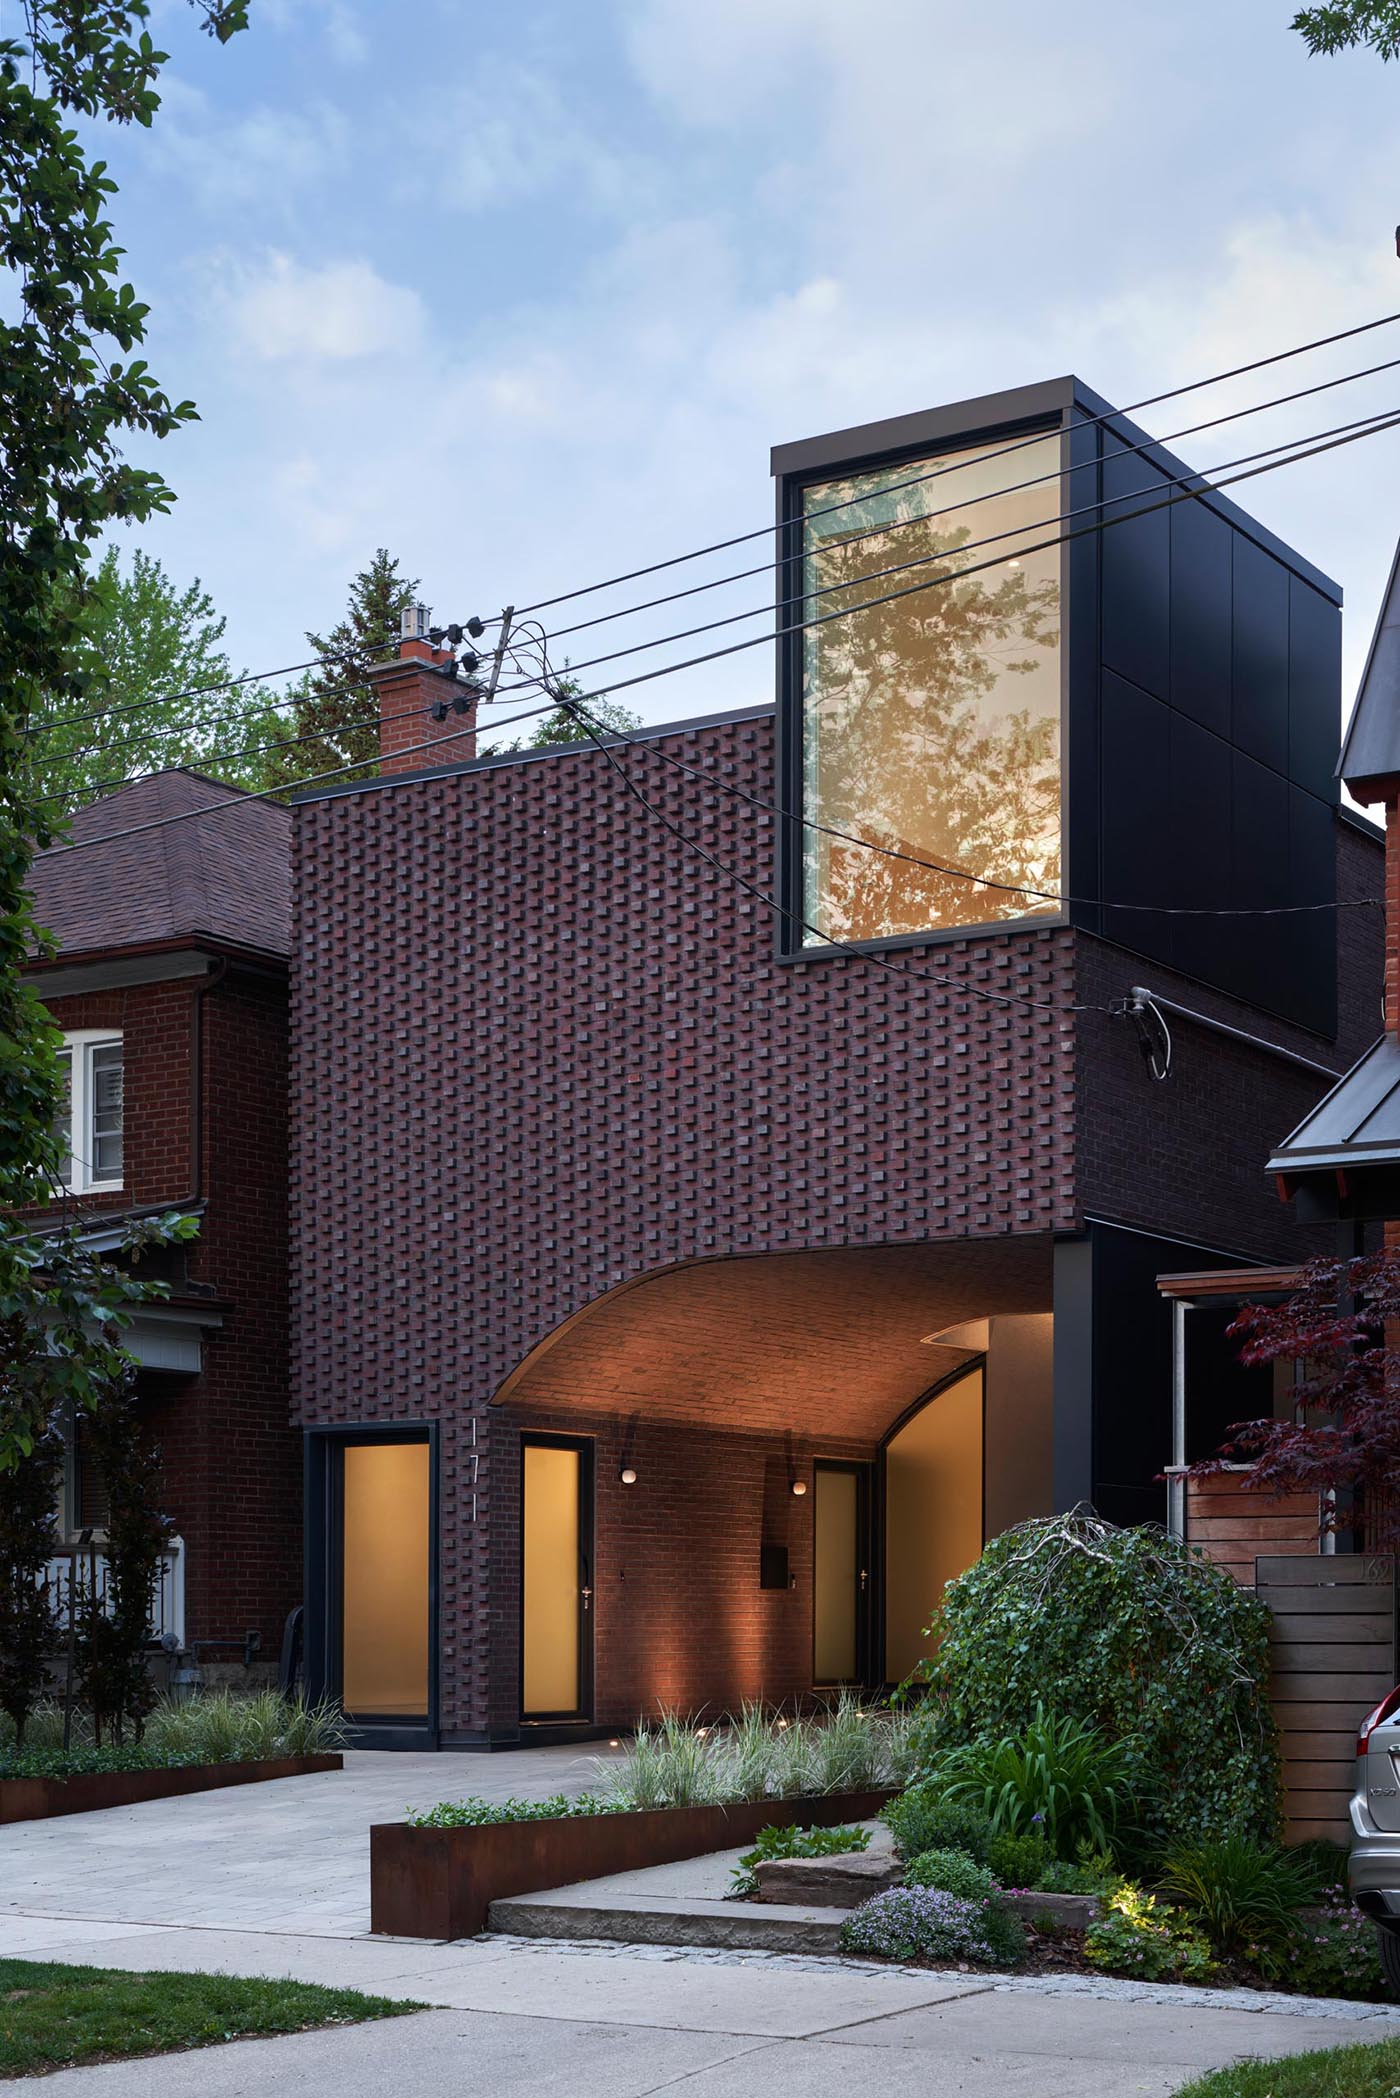 At dusk, the lights from the interior of the home and the featured exterior lighting highlight the windows and doors, and create a soft ambient glow.